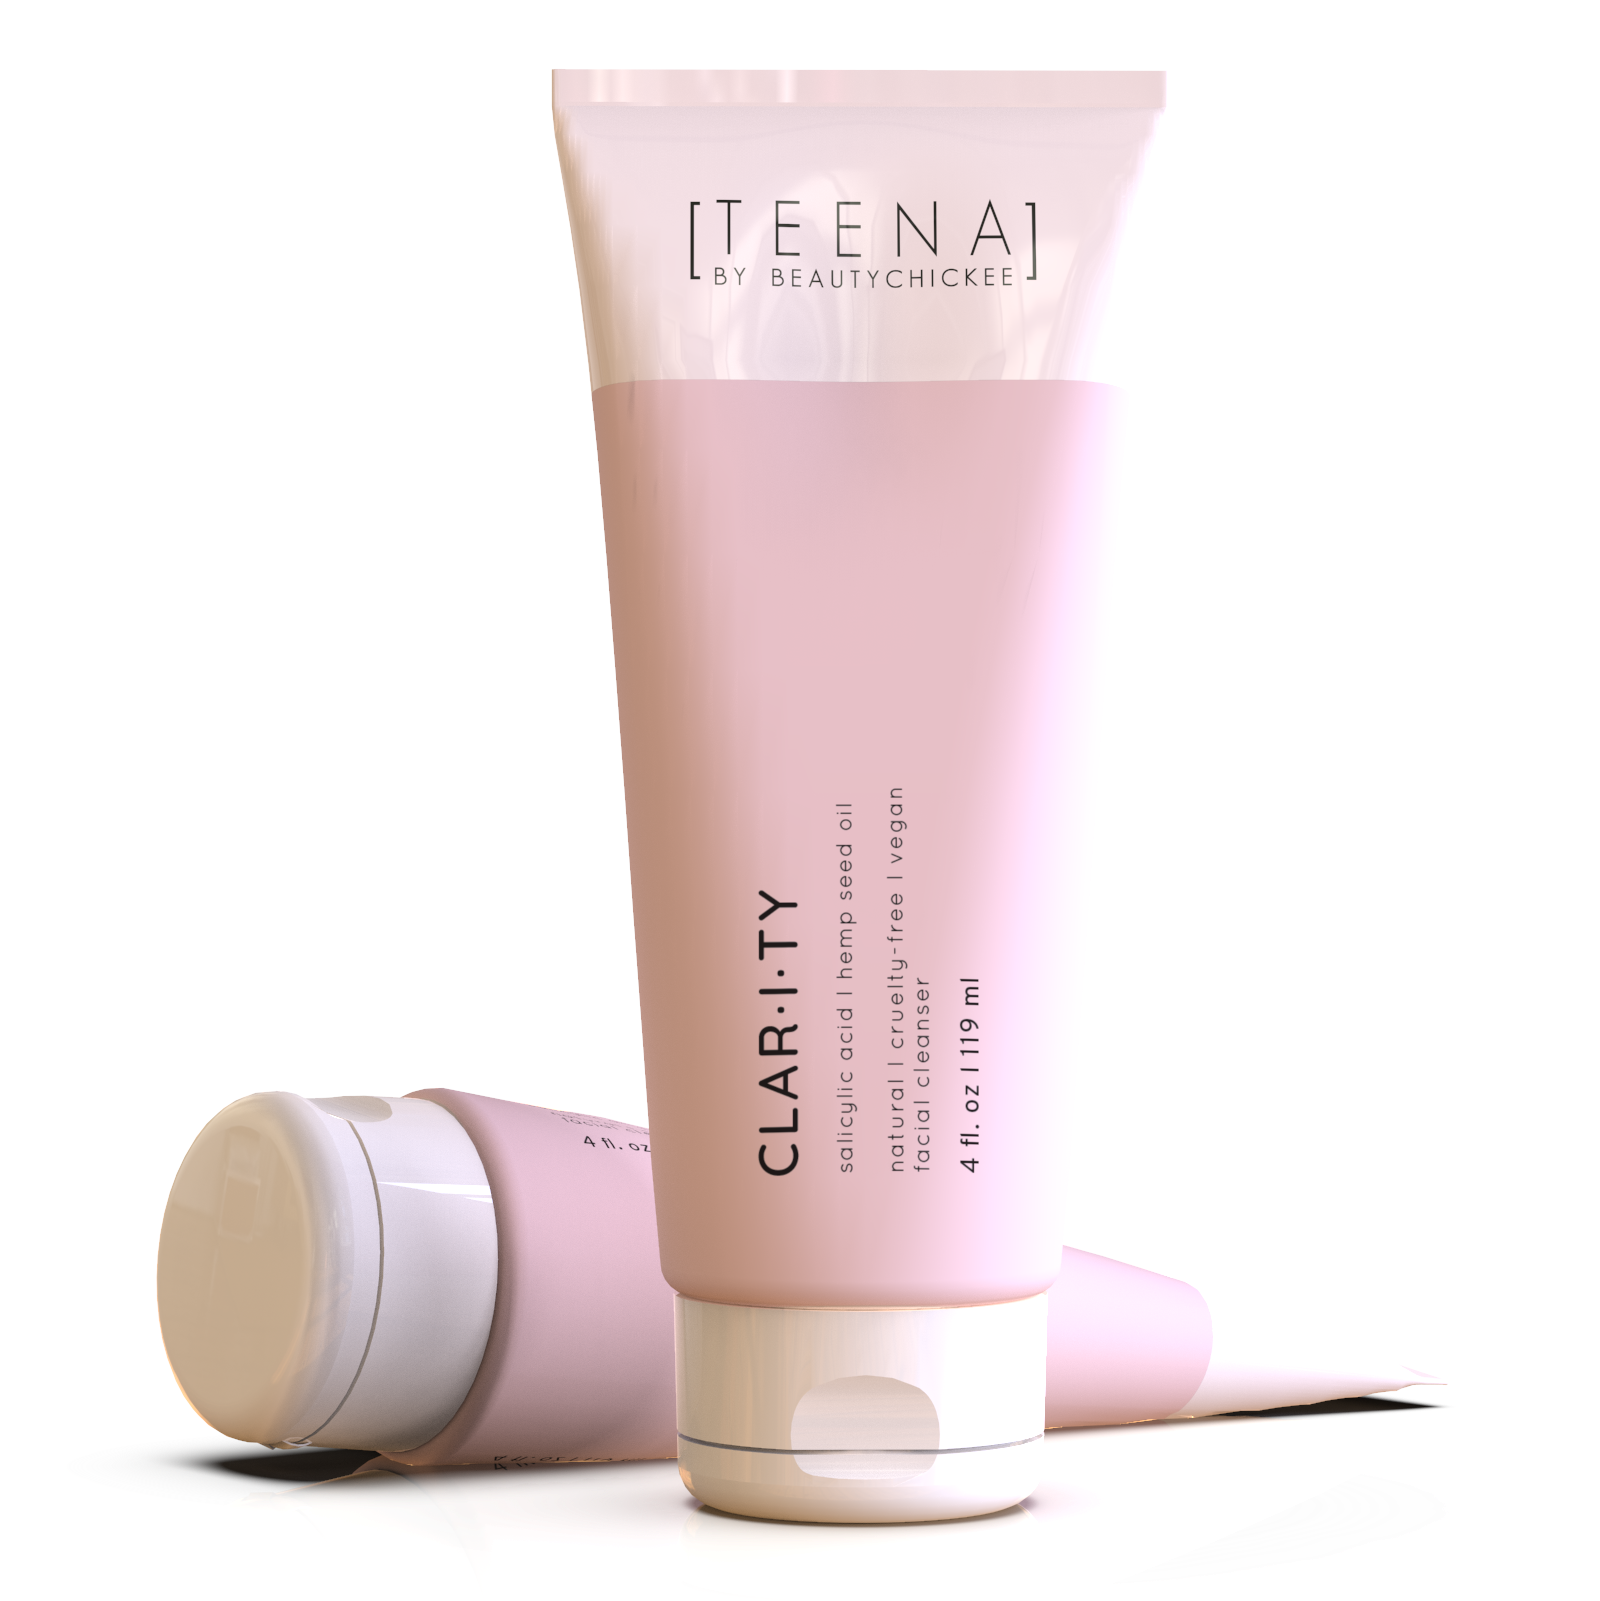 Clar-i-ty Facial Cleanser / US FREE SHIP ONLY